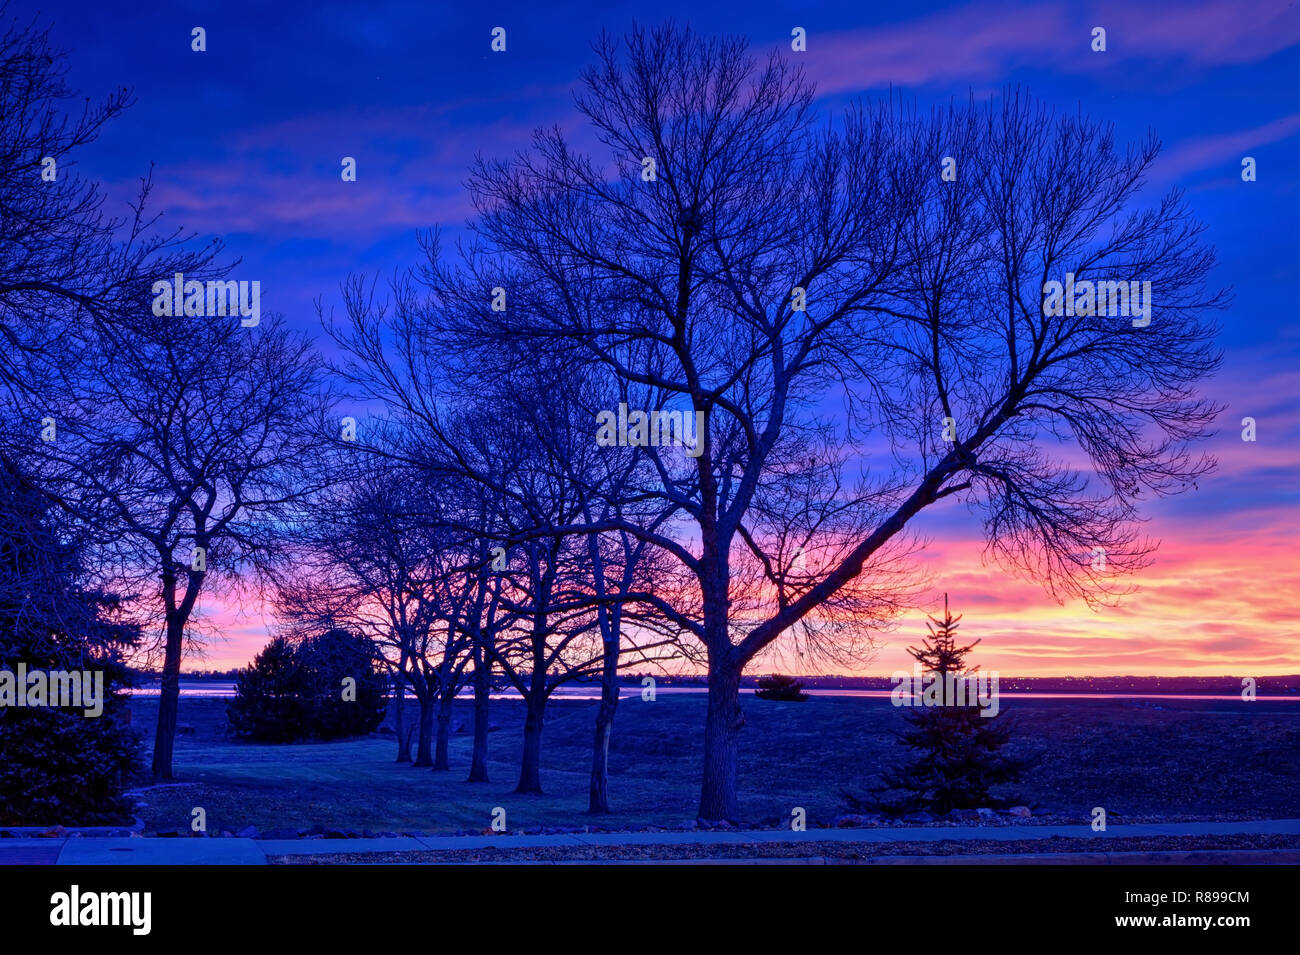 Green Ash trees in silhouette at early sunrise with colorful clouds in the background. - Stock Image